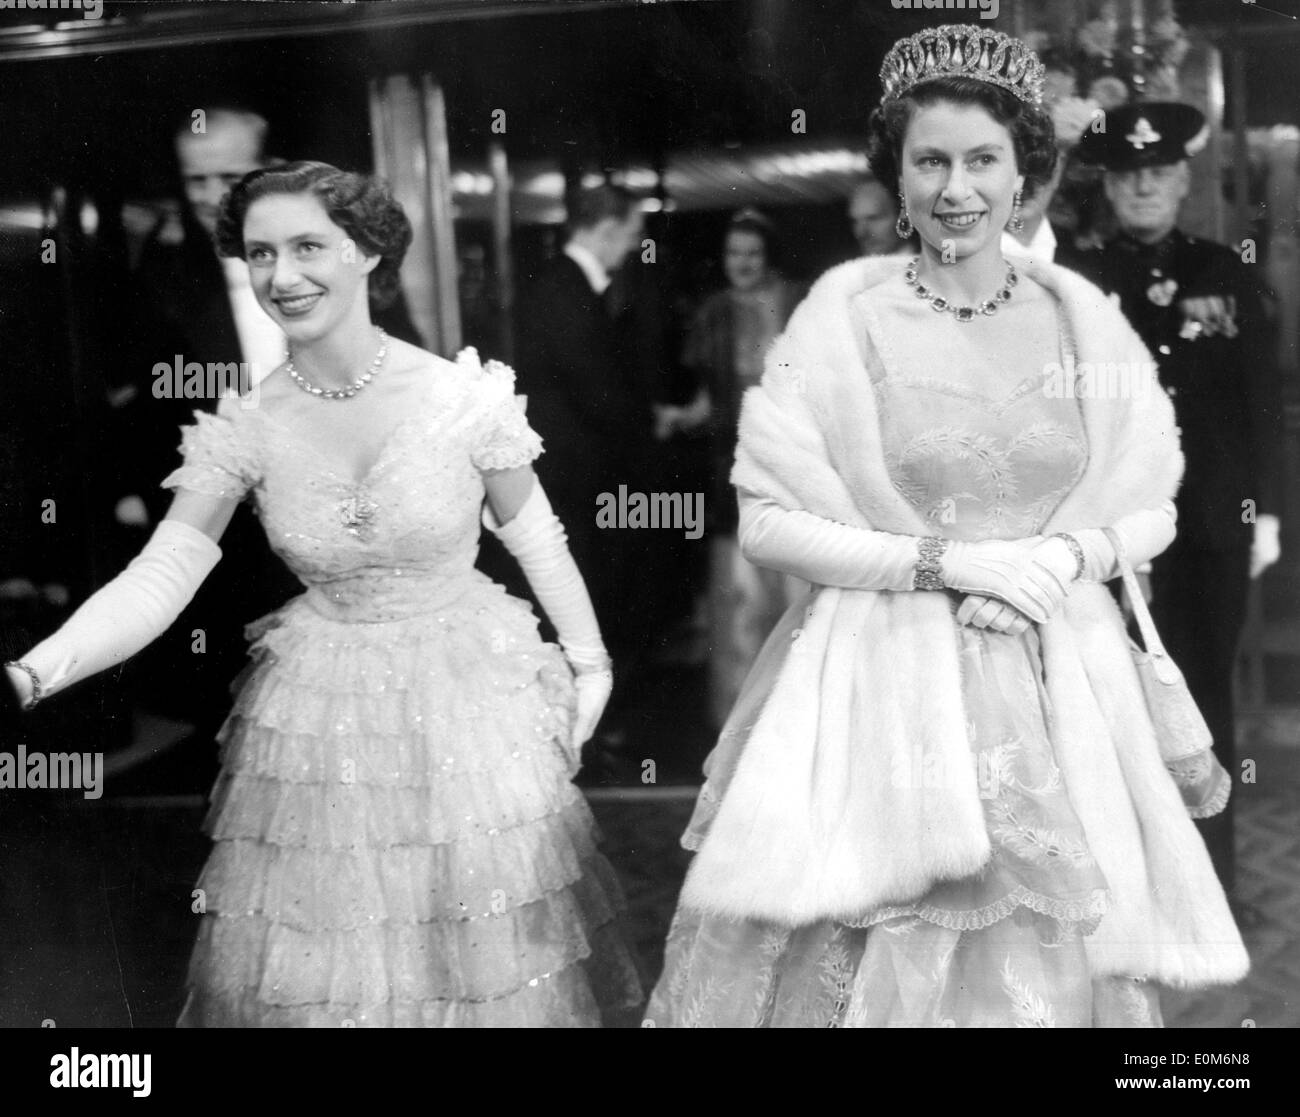 Queen Elizabeth II and Princess Margaret in ball gowns ...